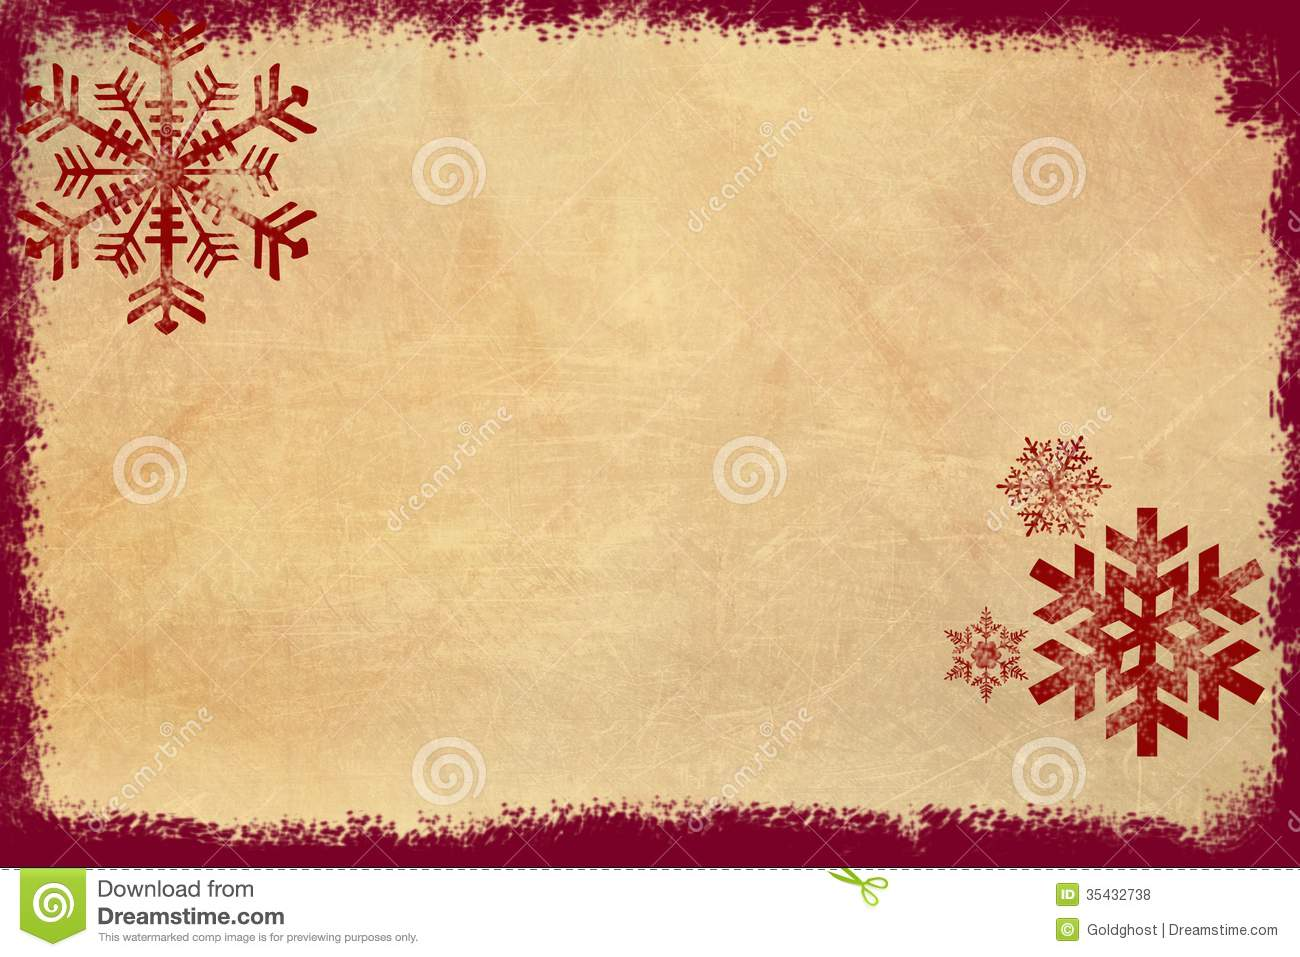 Christmas Themed Borders Images Pictures   Becuo 1300x957